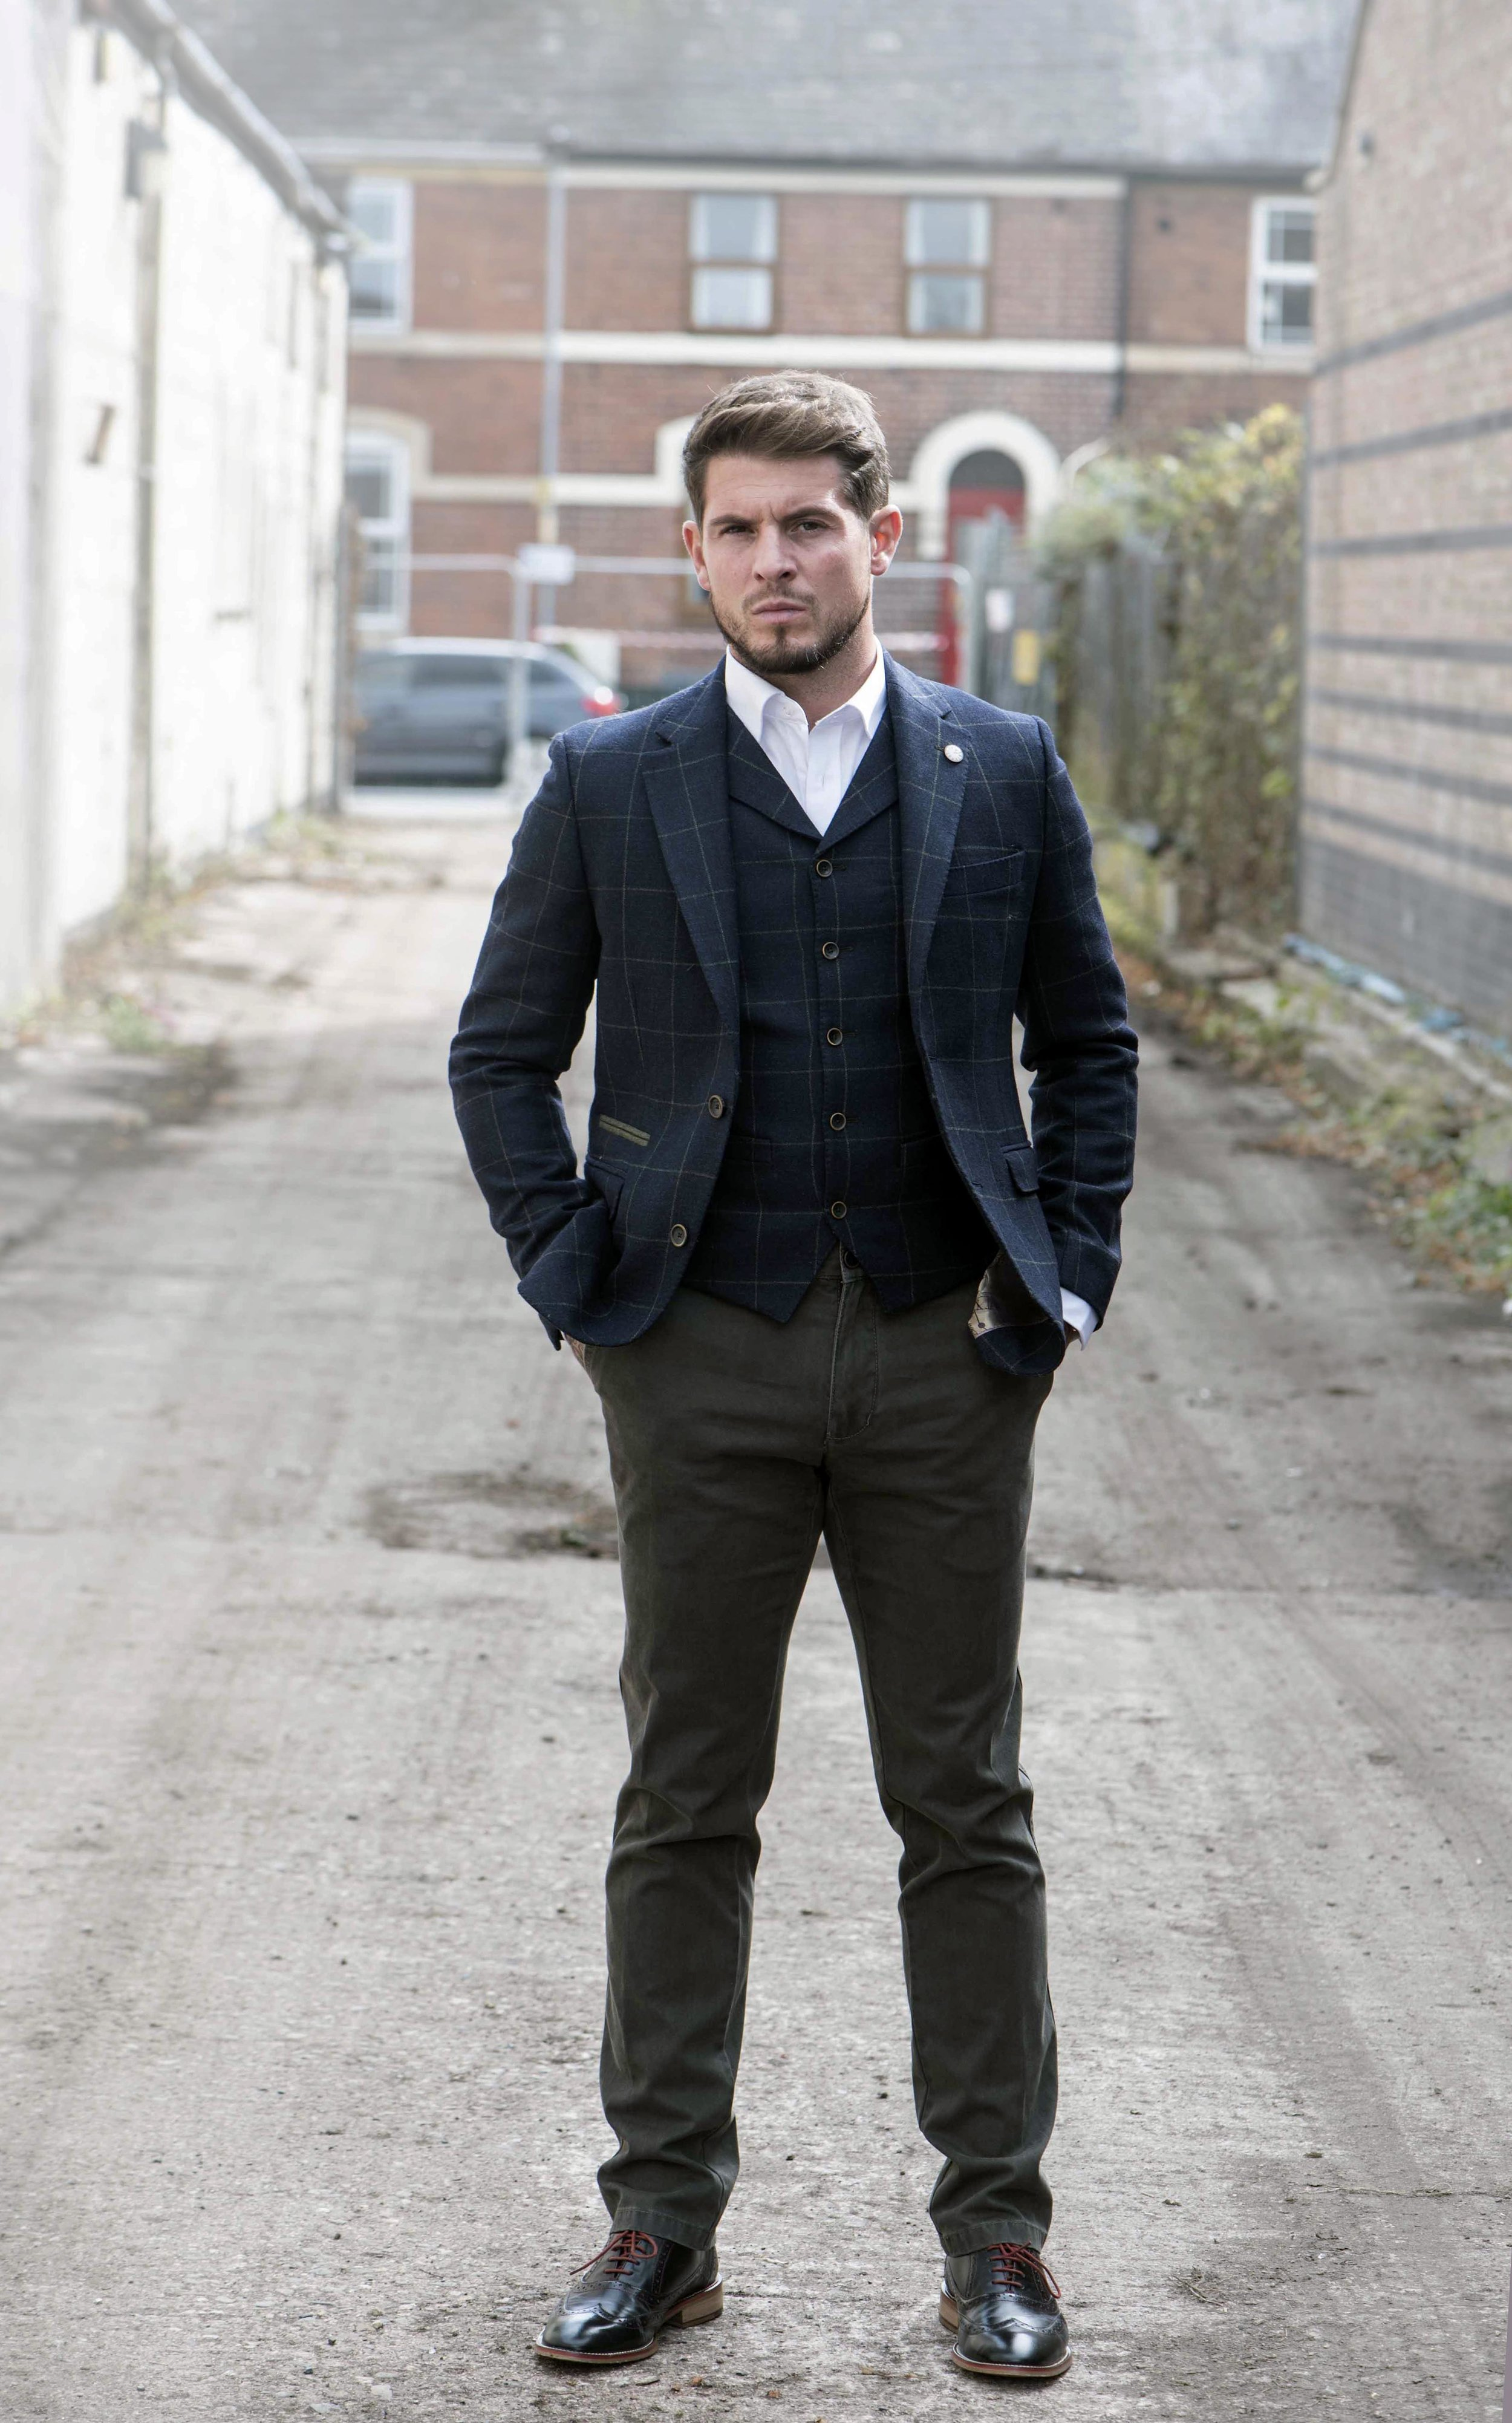 Man in check waiscoat, jacket and blue trousers.jpg